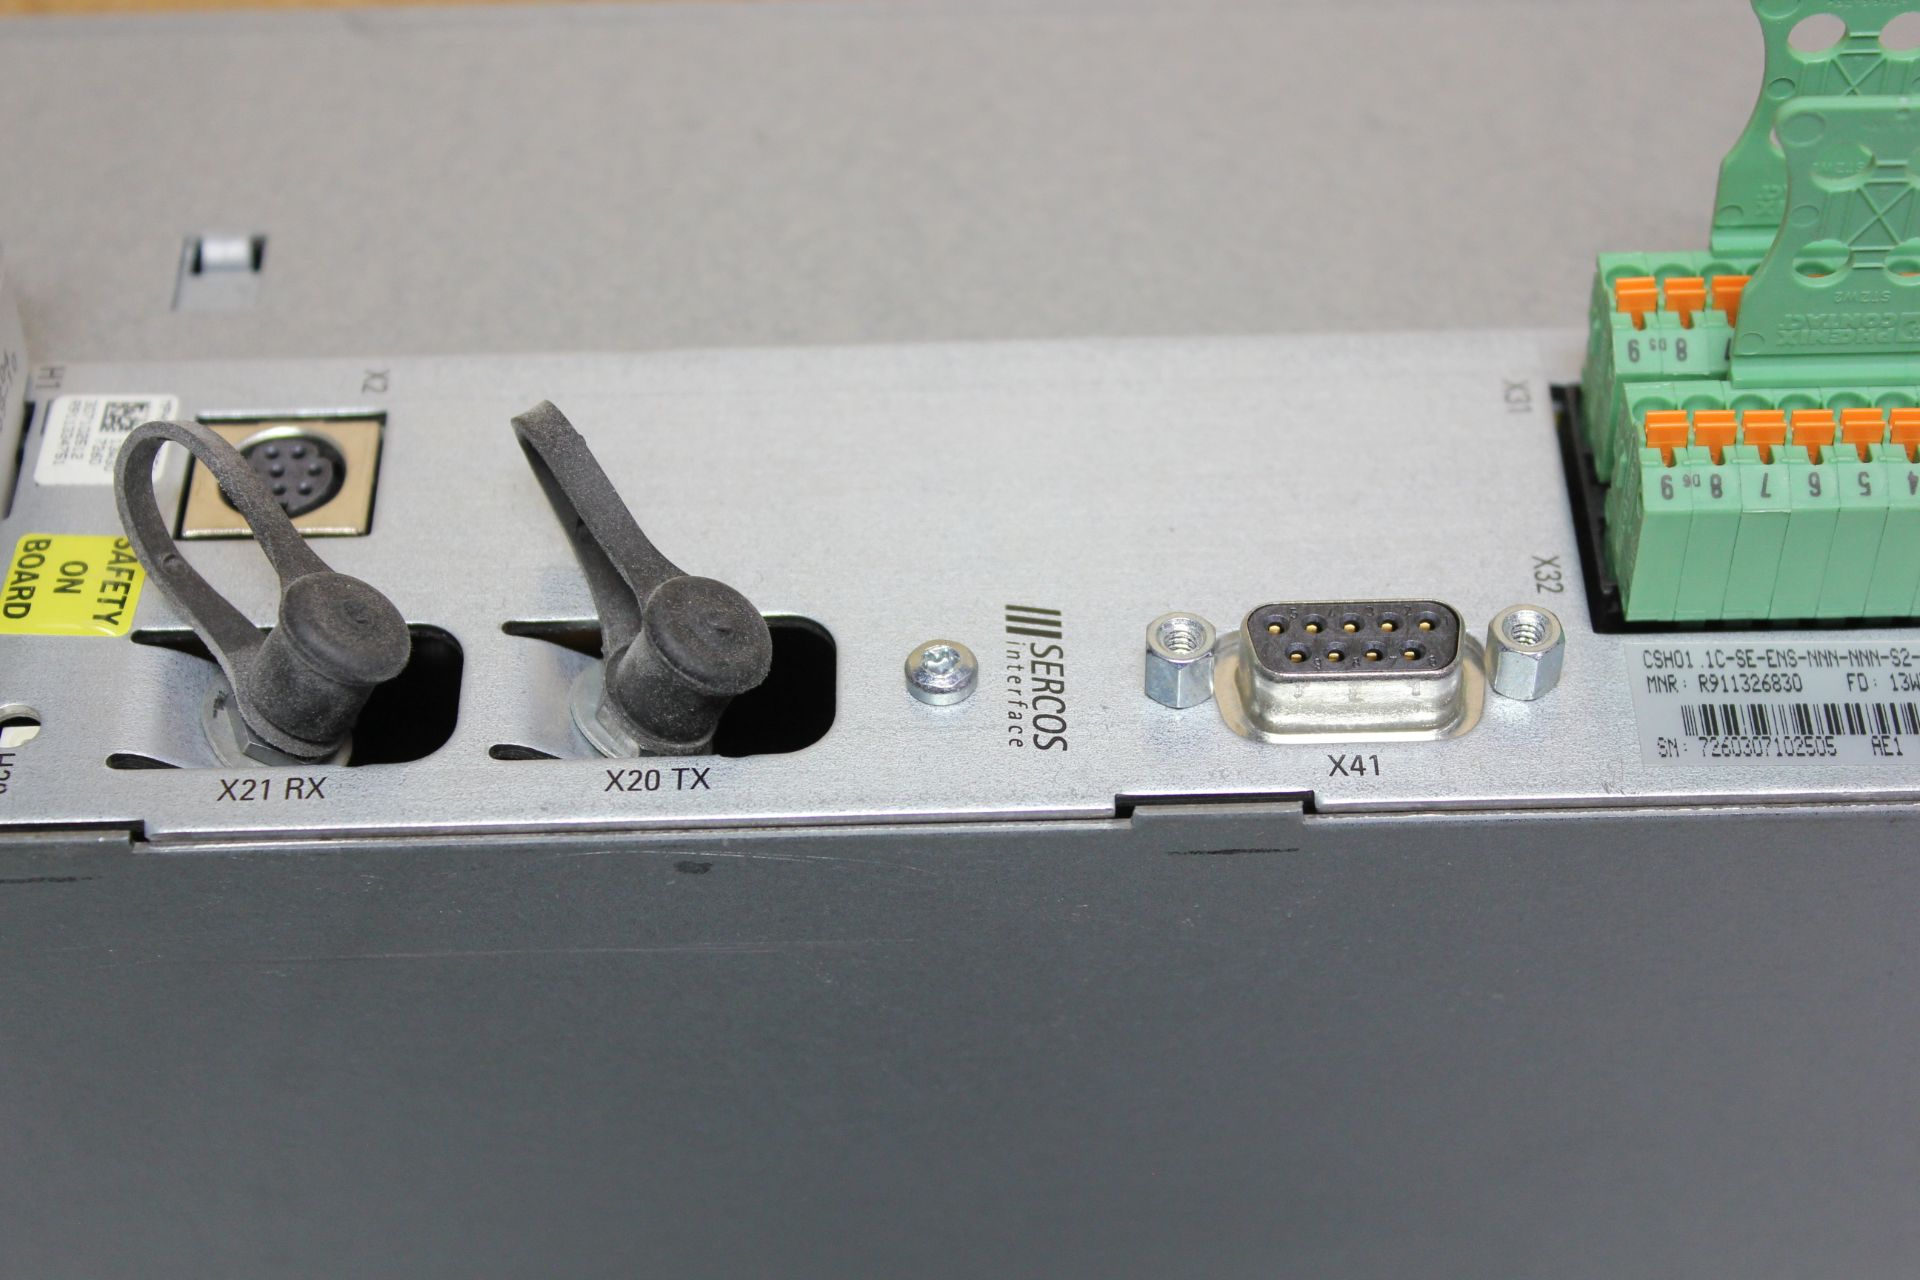 REXROTH INDRADRIVE M SINGLE AXIS INVERTER SERCOS MODULE - Image 3 of 7